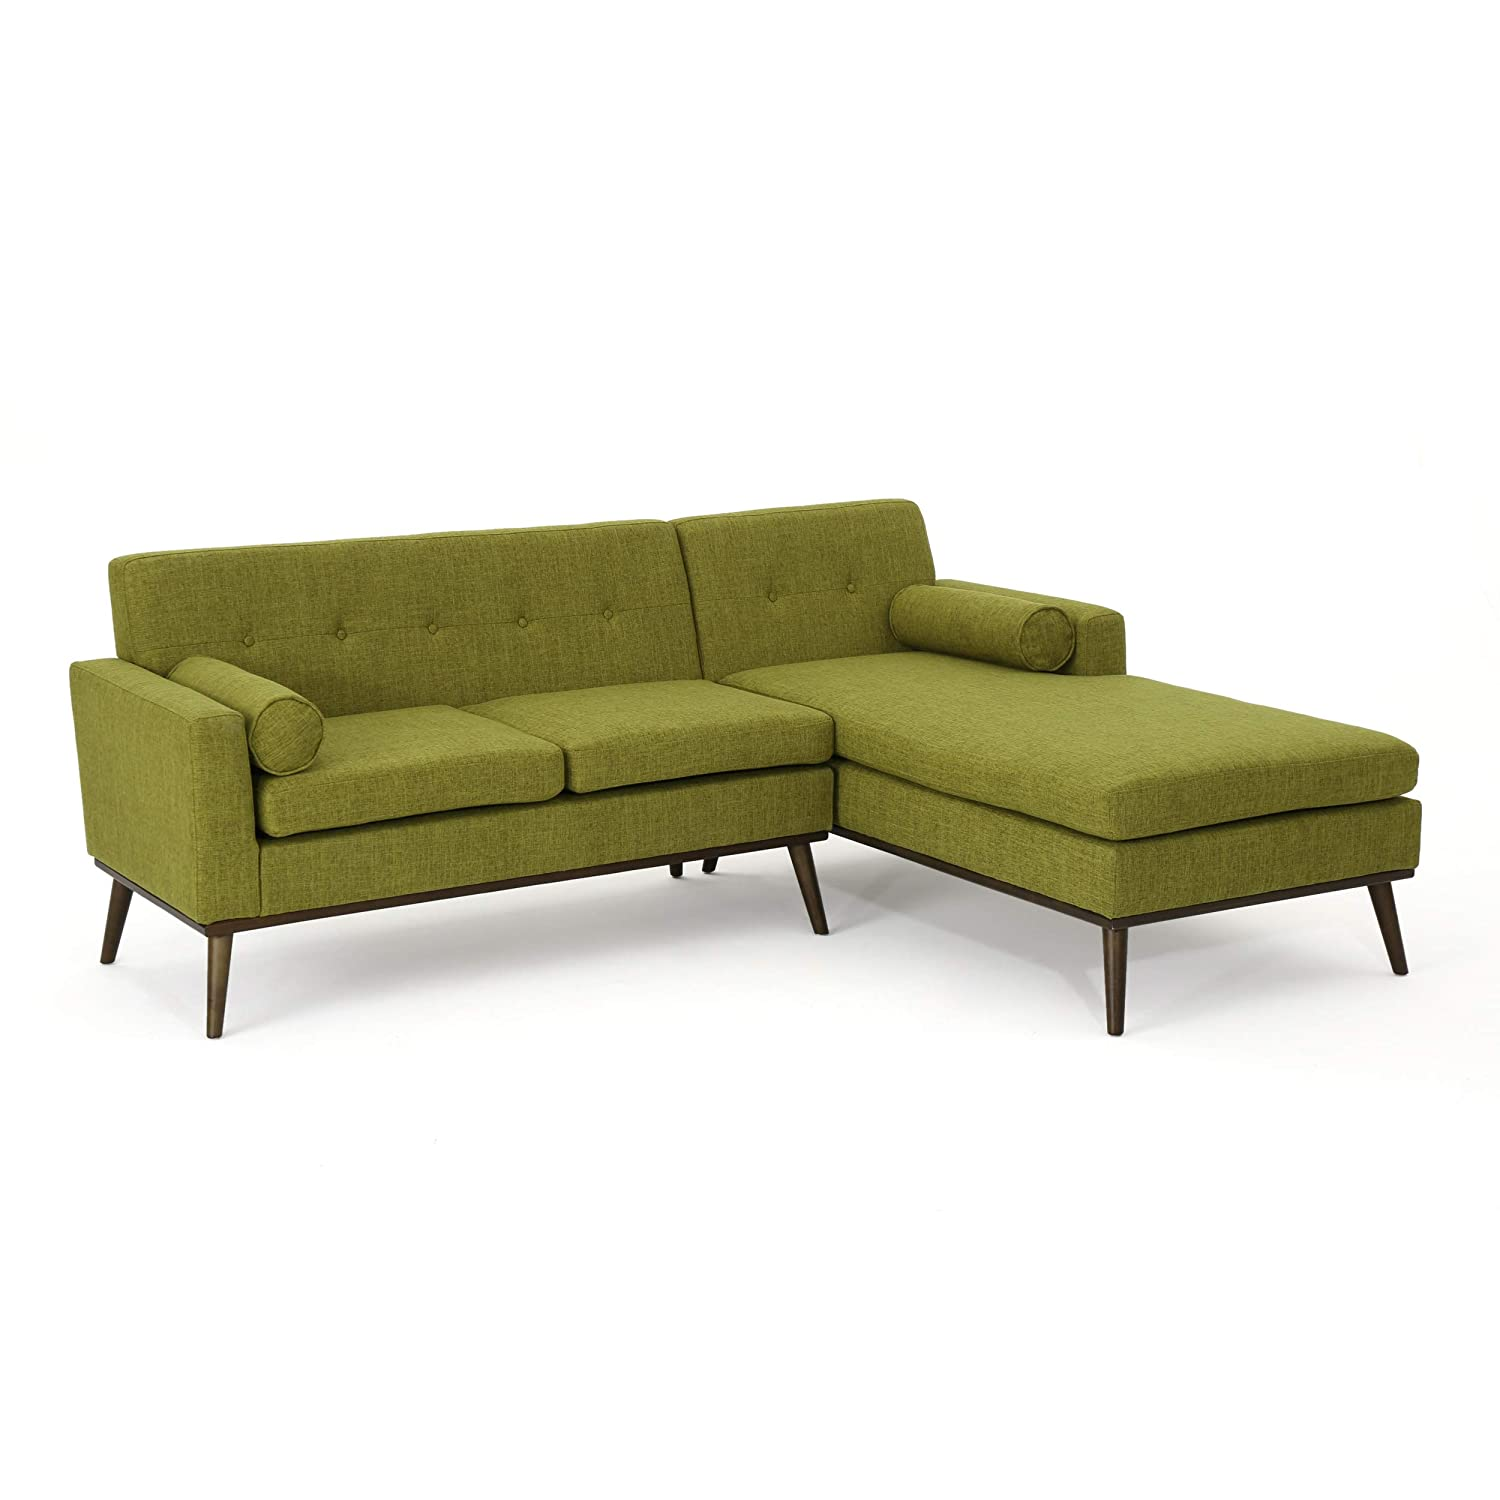 Fine Christopher Knight Home Sophia Mid Century Modern 2 Piece Fabric Sectional Sofa And Lounge Set Green Walnut Ibusinesslaw Wood Chair Design Ideas Ibusinesslaworg